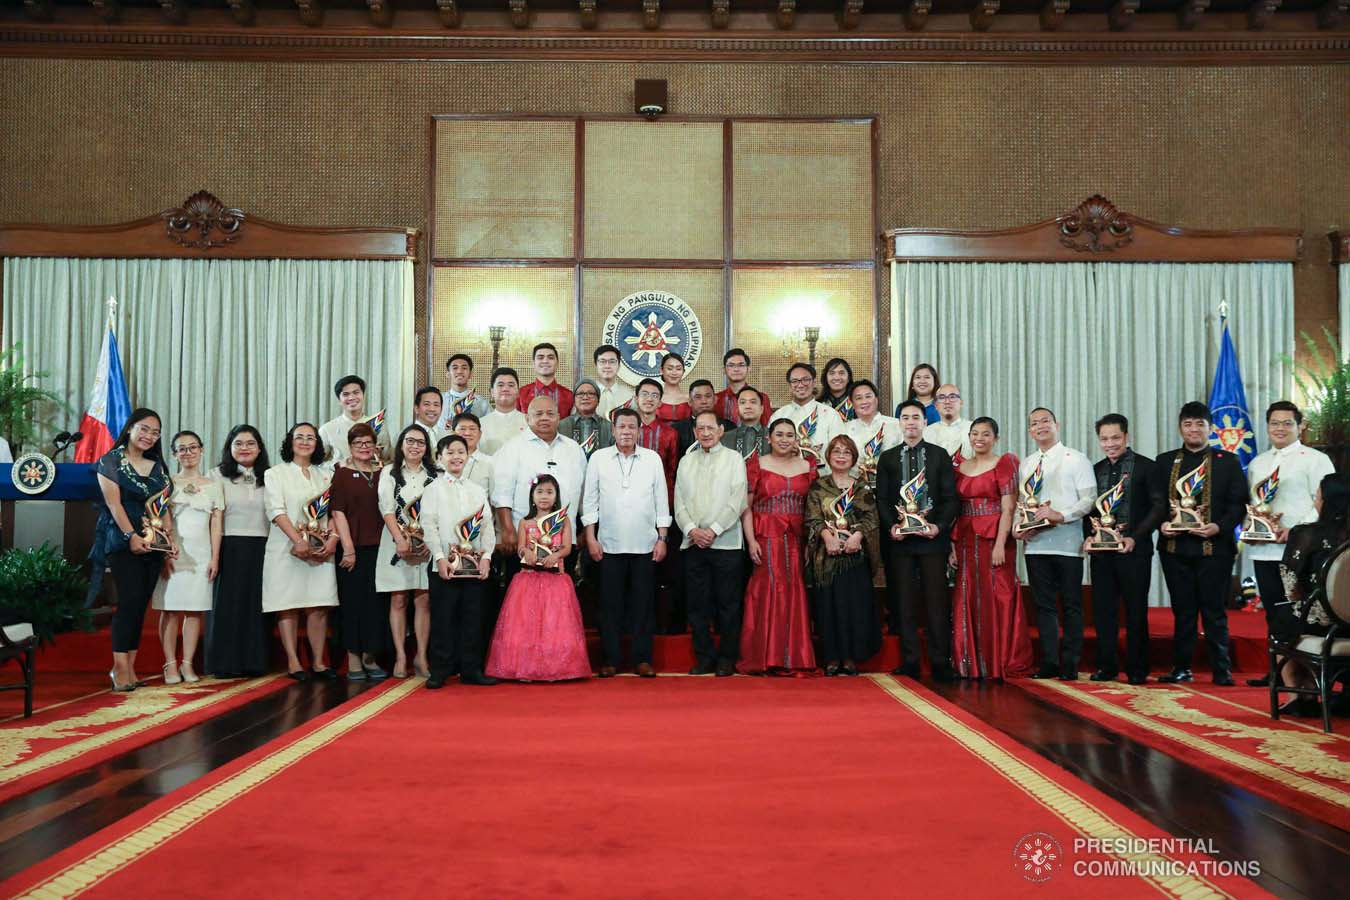 President Rodrigo Roa Duterte poses for posterity with the 12th Ani ng Dangal Awardees during the presentation of awards at the Malacañan Palace on February 26, 2020. SIMEON CELI JR./PRESIDENTIAL PHOTO